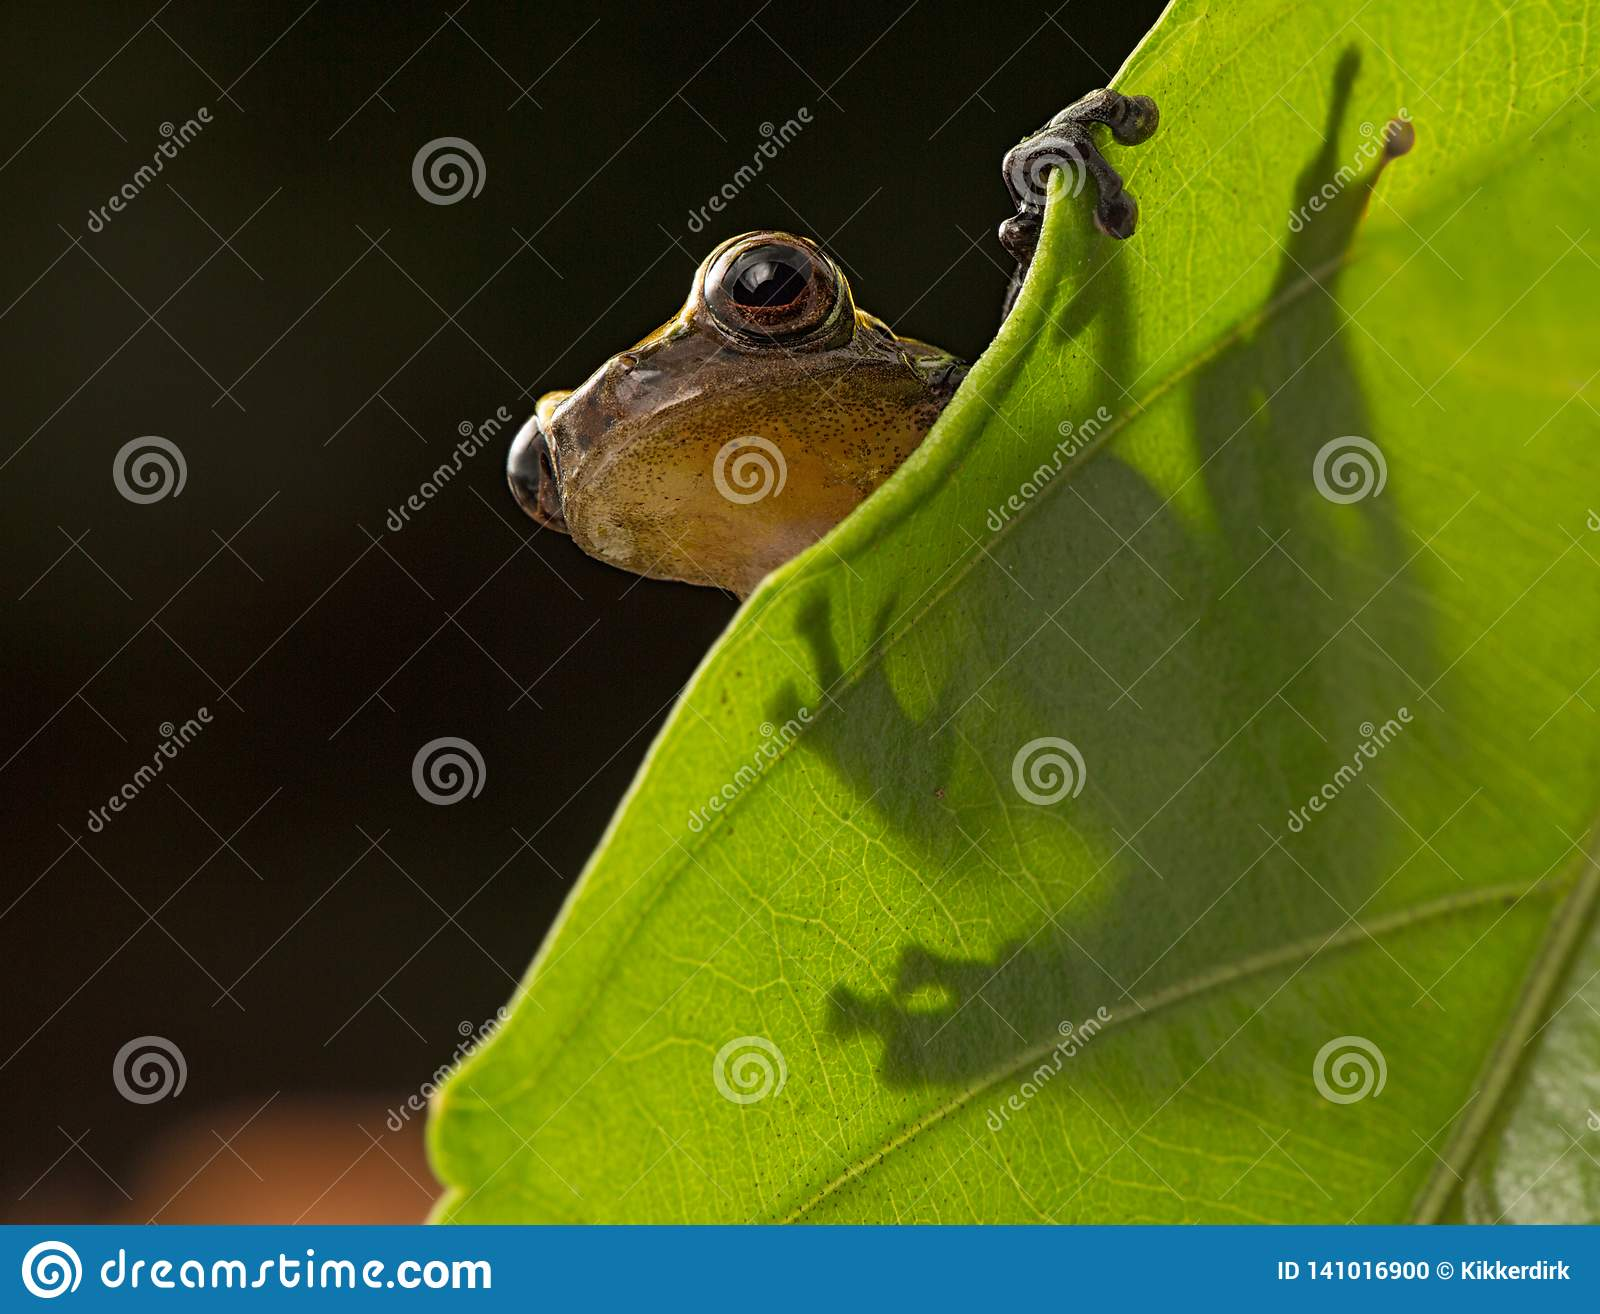 Curious little frog peeping over edge of leaf